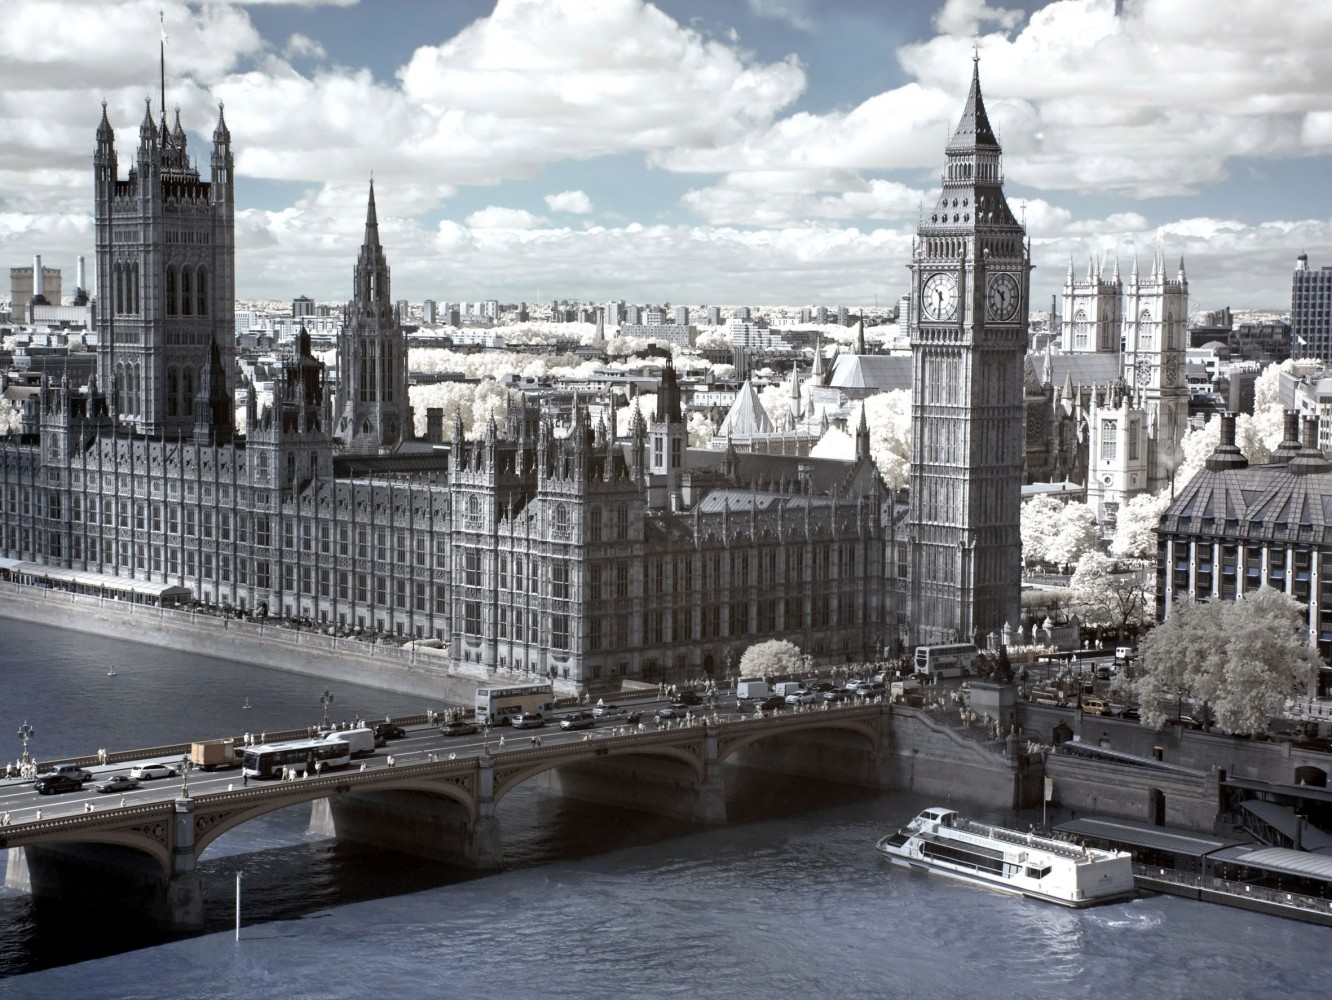 Wall mural wallpaper big ben london temse photo 360 cm x for Black and white london mural wallpaper